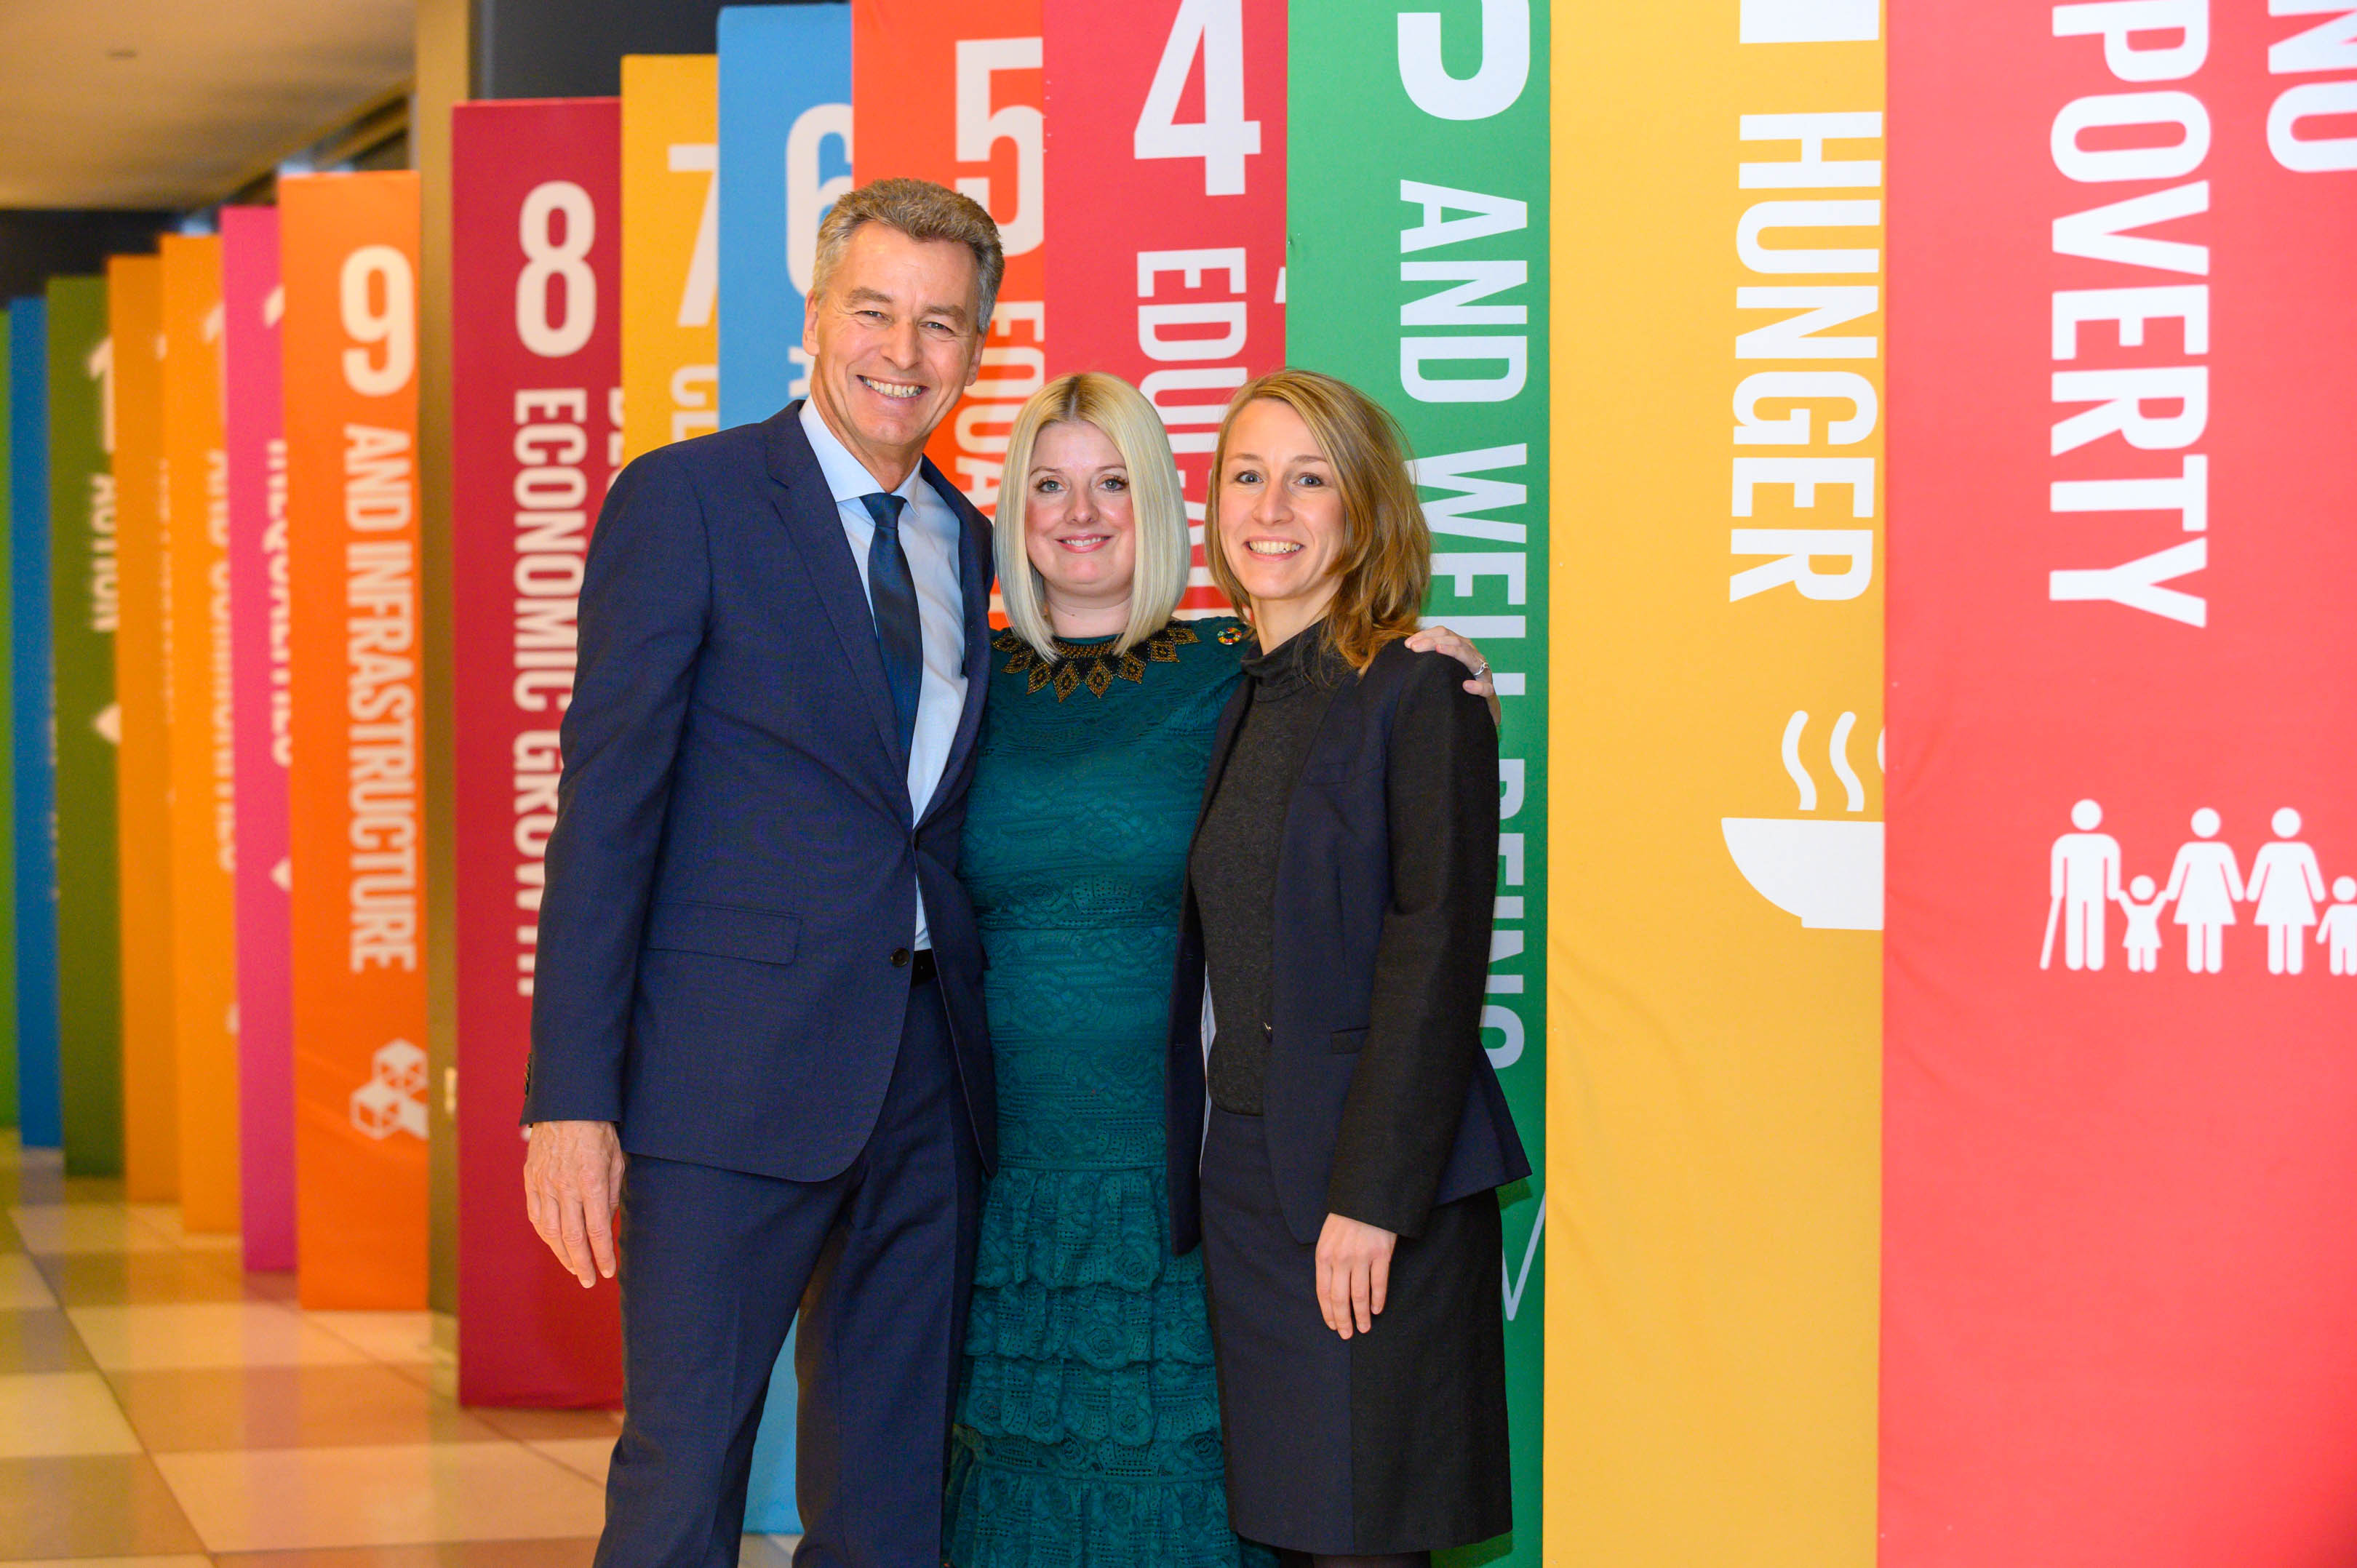 Conscious Fashion Campaign founder Kerry Bannigan (center) stands with Detlef Braun (left) and Lilliffer Seiler (right) of Messe Frankfurt beside a series of panels outlining the United Nations' Sustainable Development Goals (Photography courtesy of Rich Dodge for Messe Frankfurt)